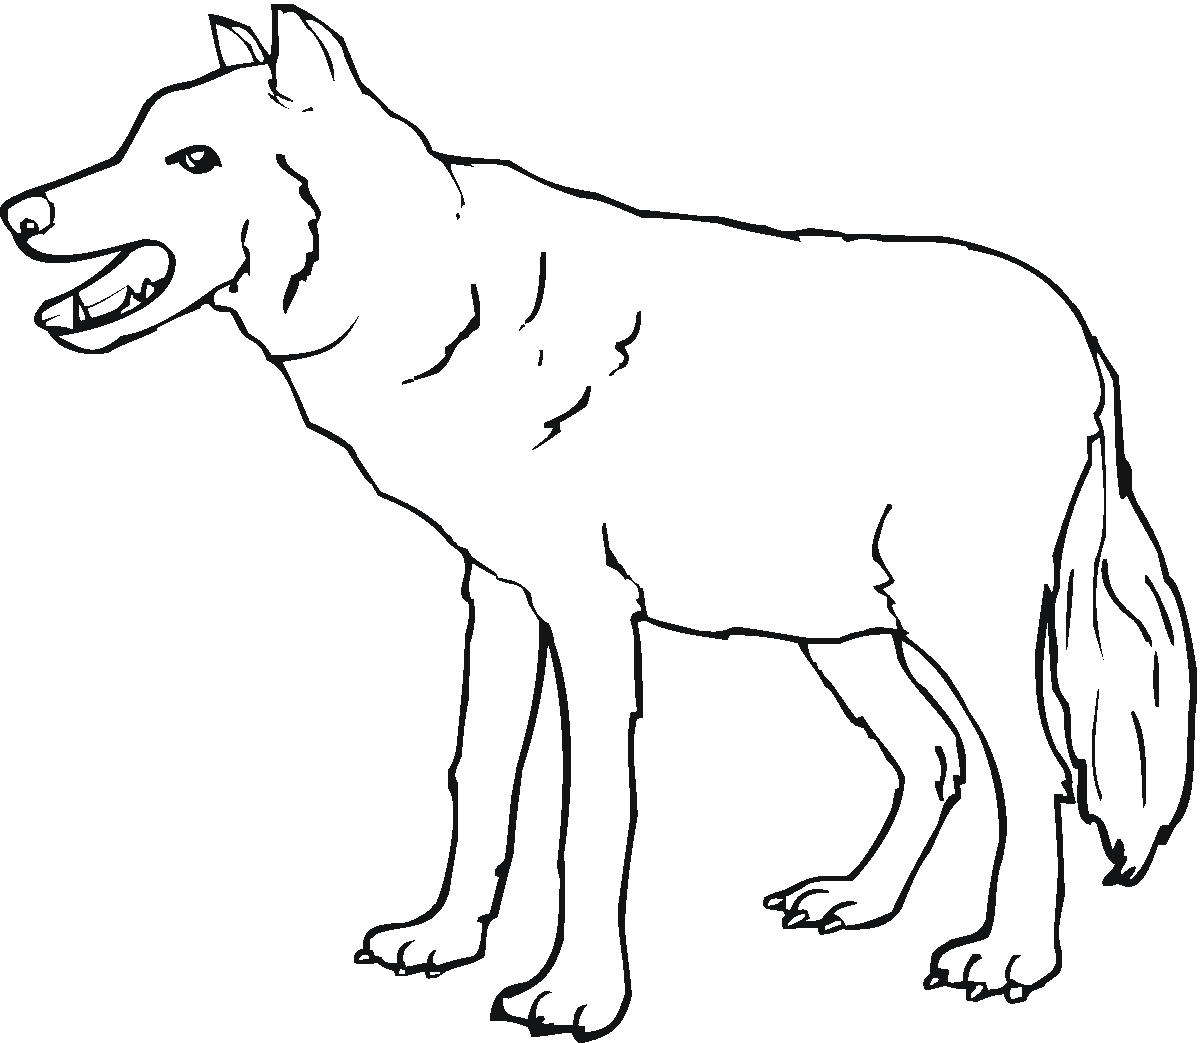 Wolf Coloring Pages Elegant Free Printable Wolf Coloring Pages for Download Of Wolves Coloring Pages Wolf Coloring Pages Free Coloring Pages Collection